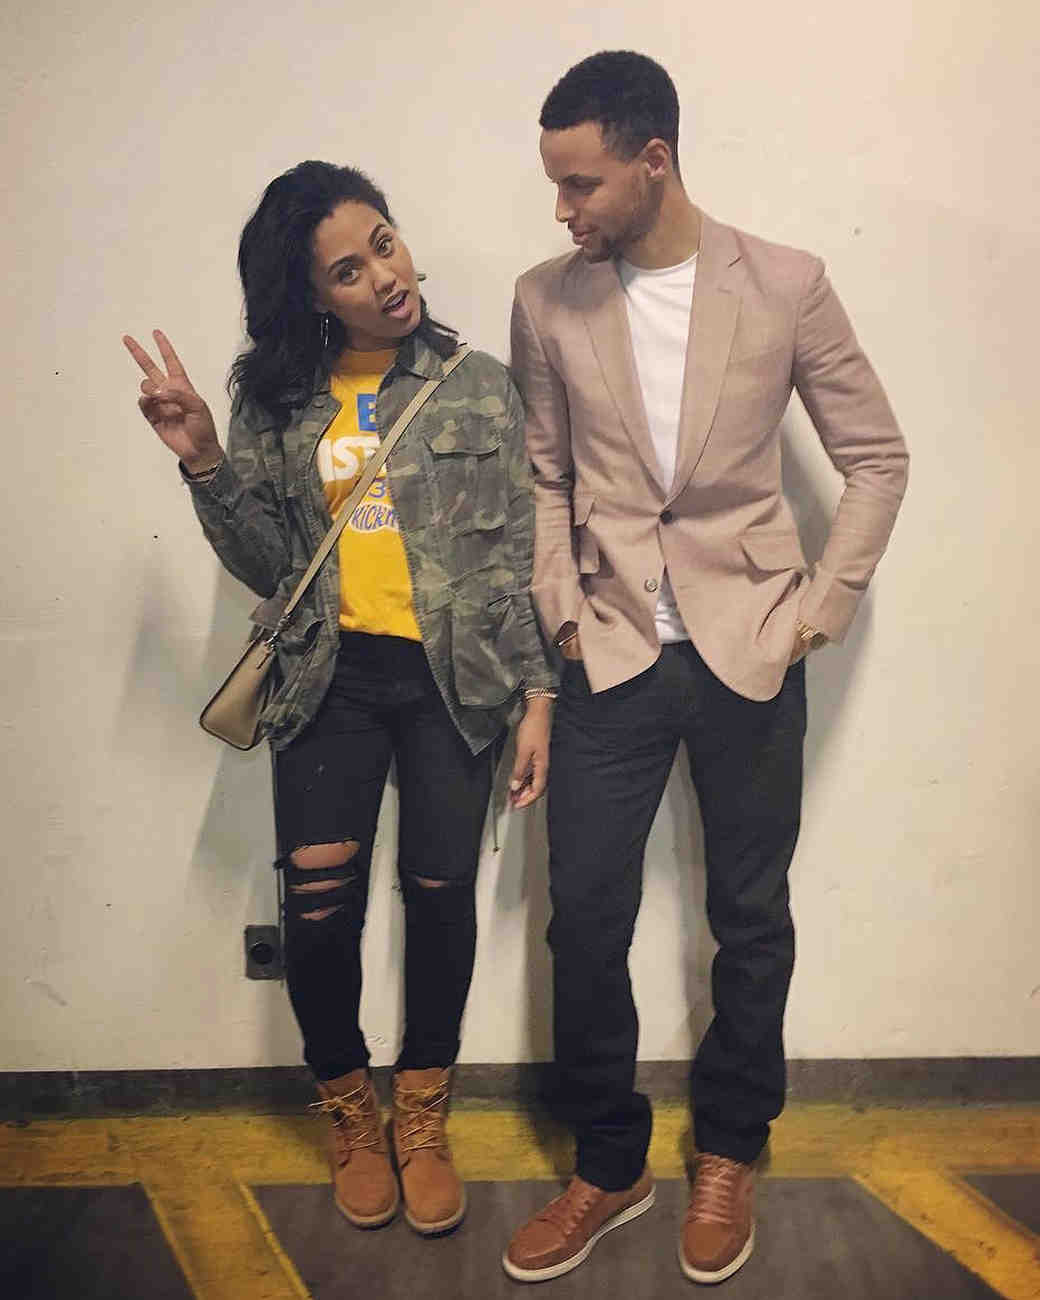 steph-curry-ayesha-curry-instagram-0716.jpg